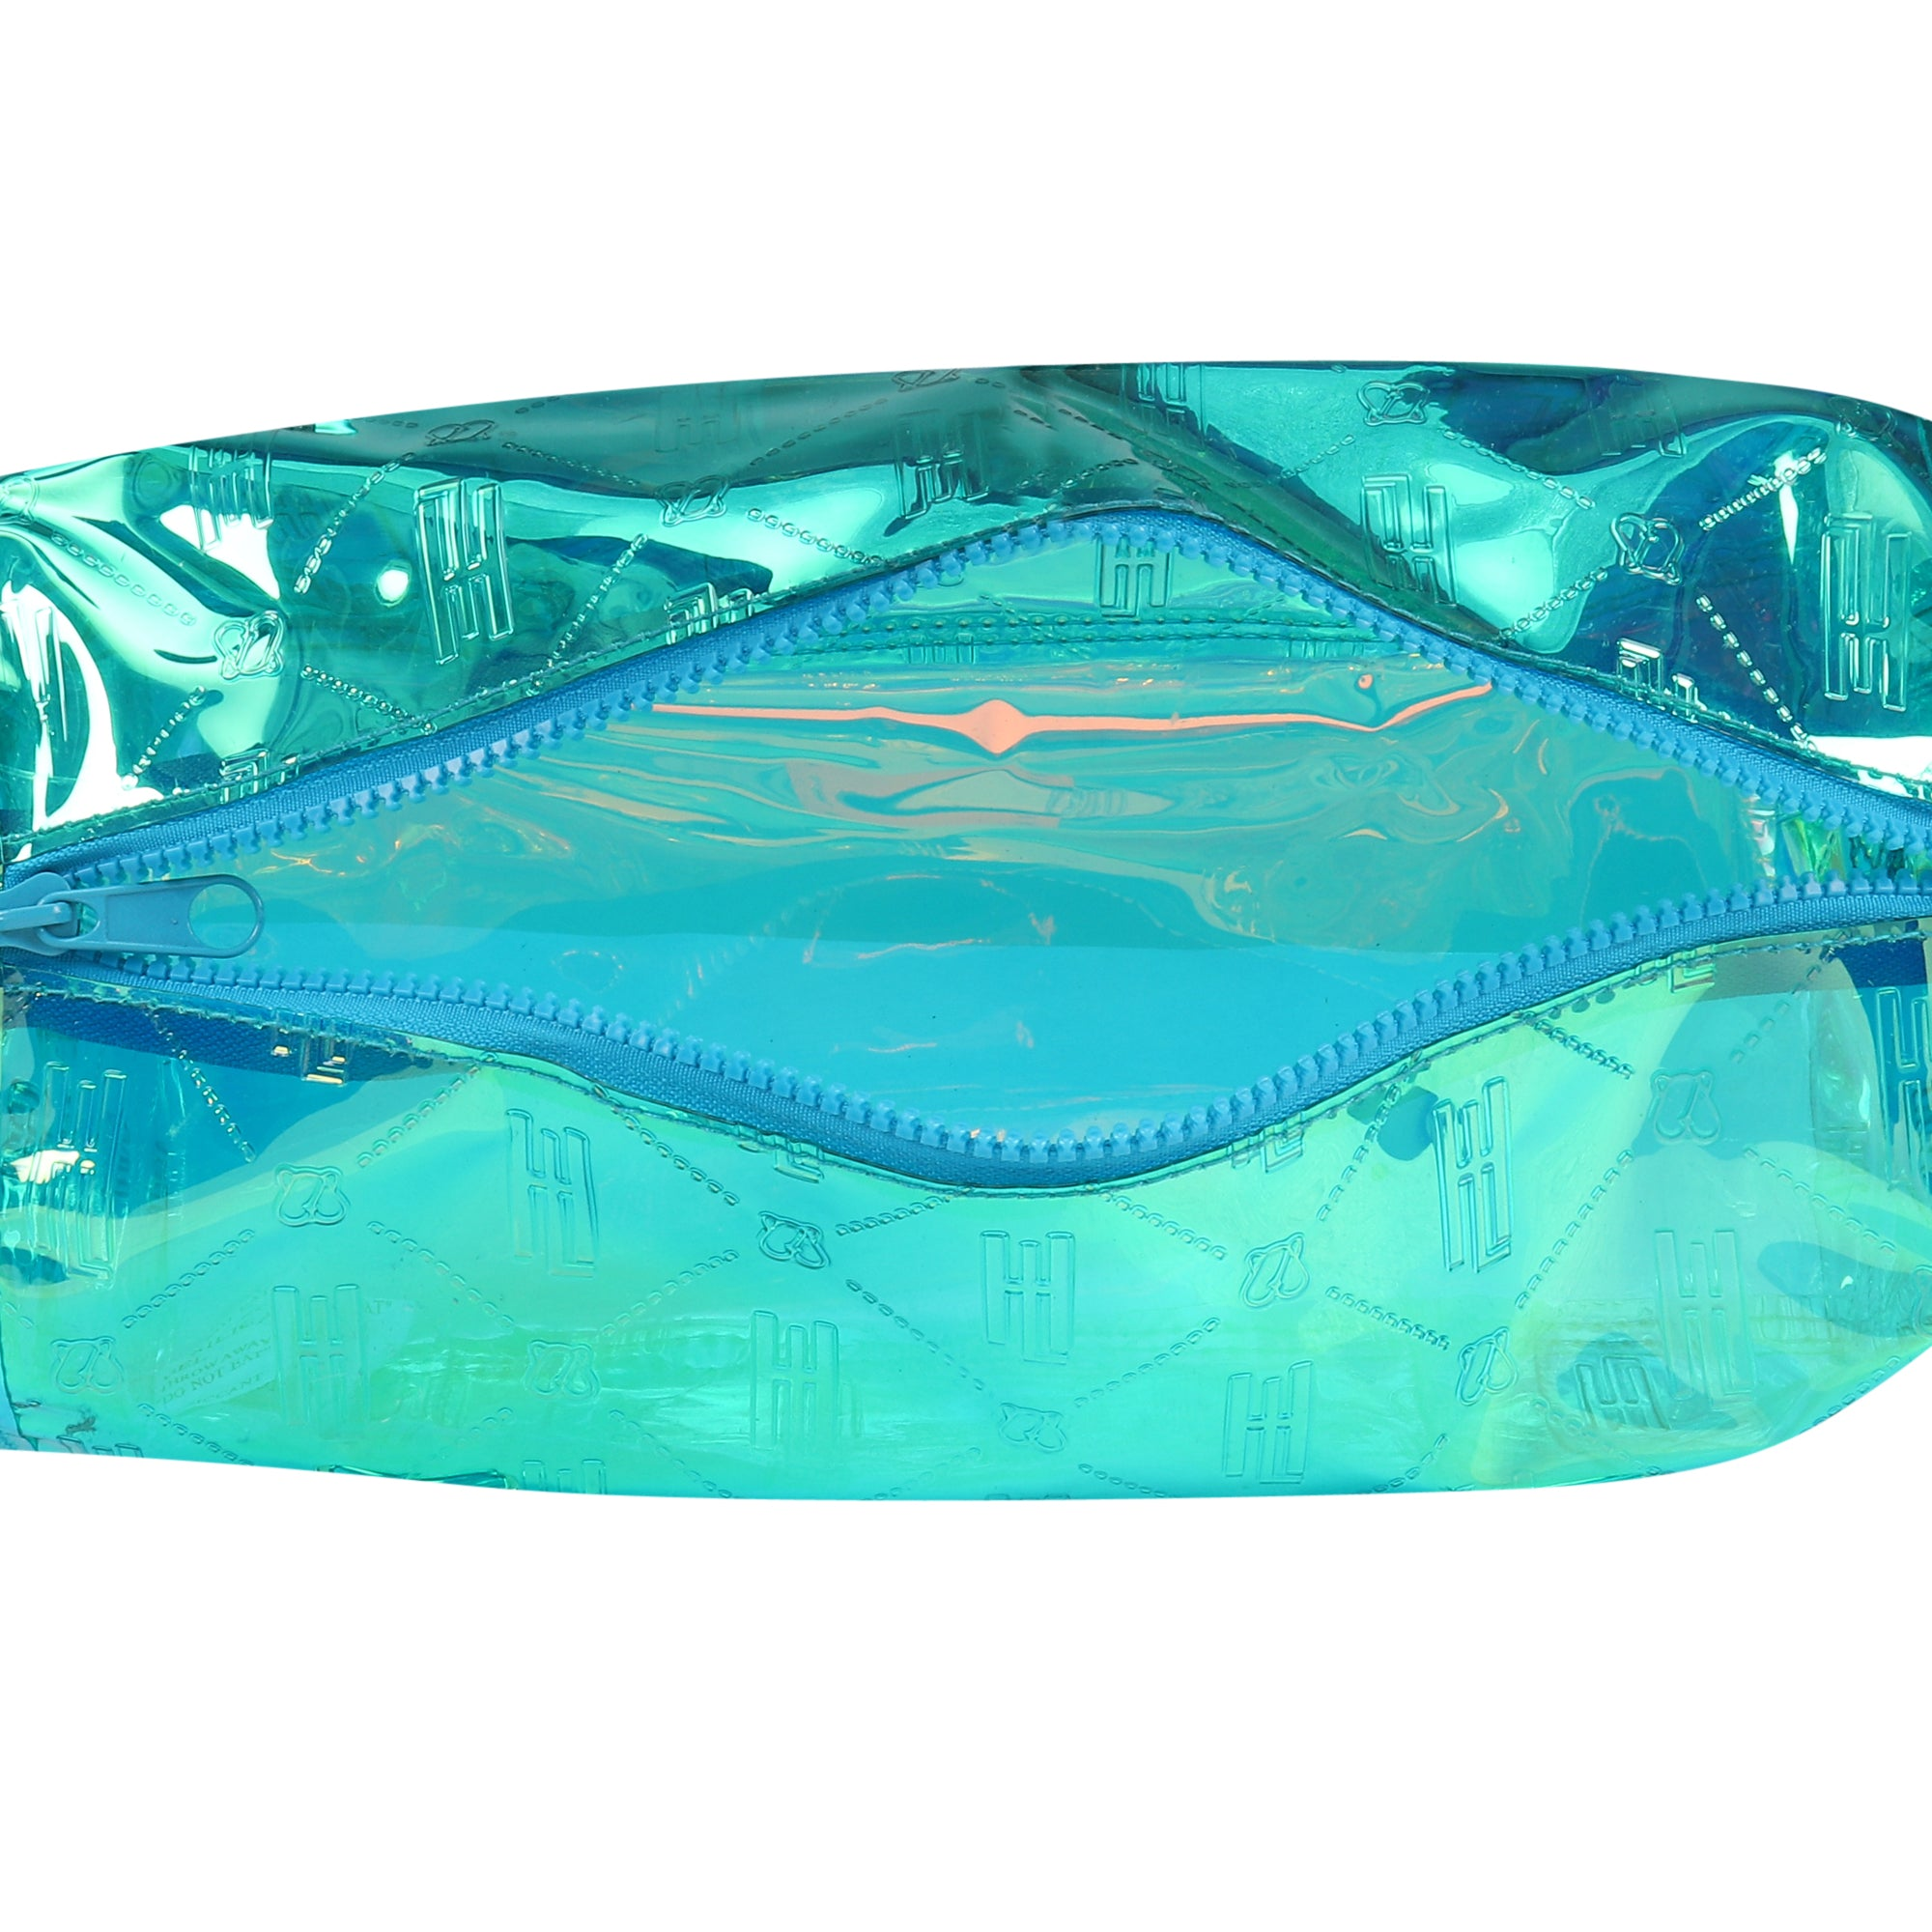 HL Raver Duffle Bag Sea Green Medium